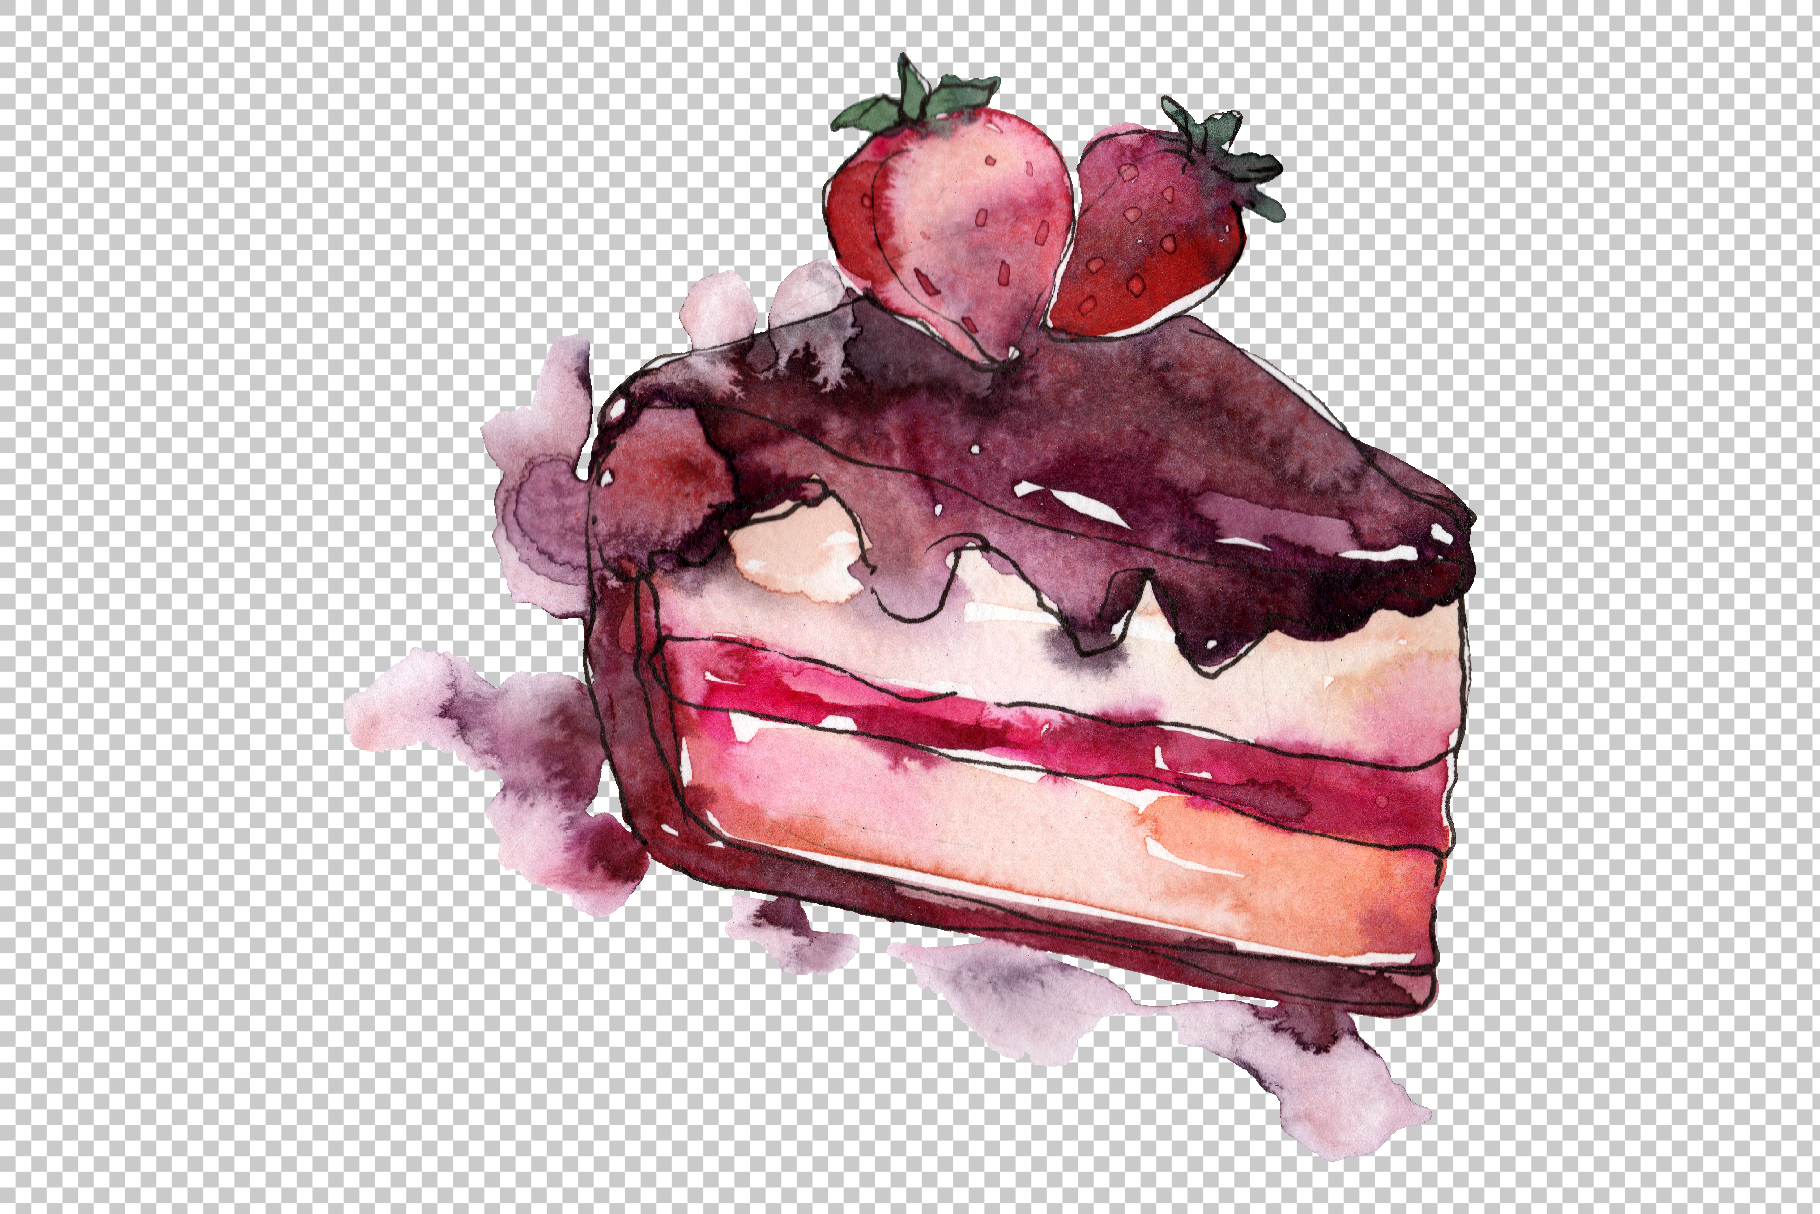 Dessert Love story Watercolor png example image 2